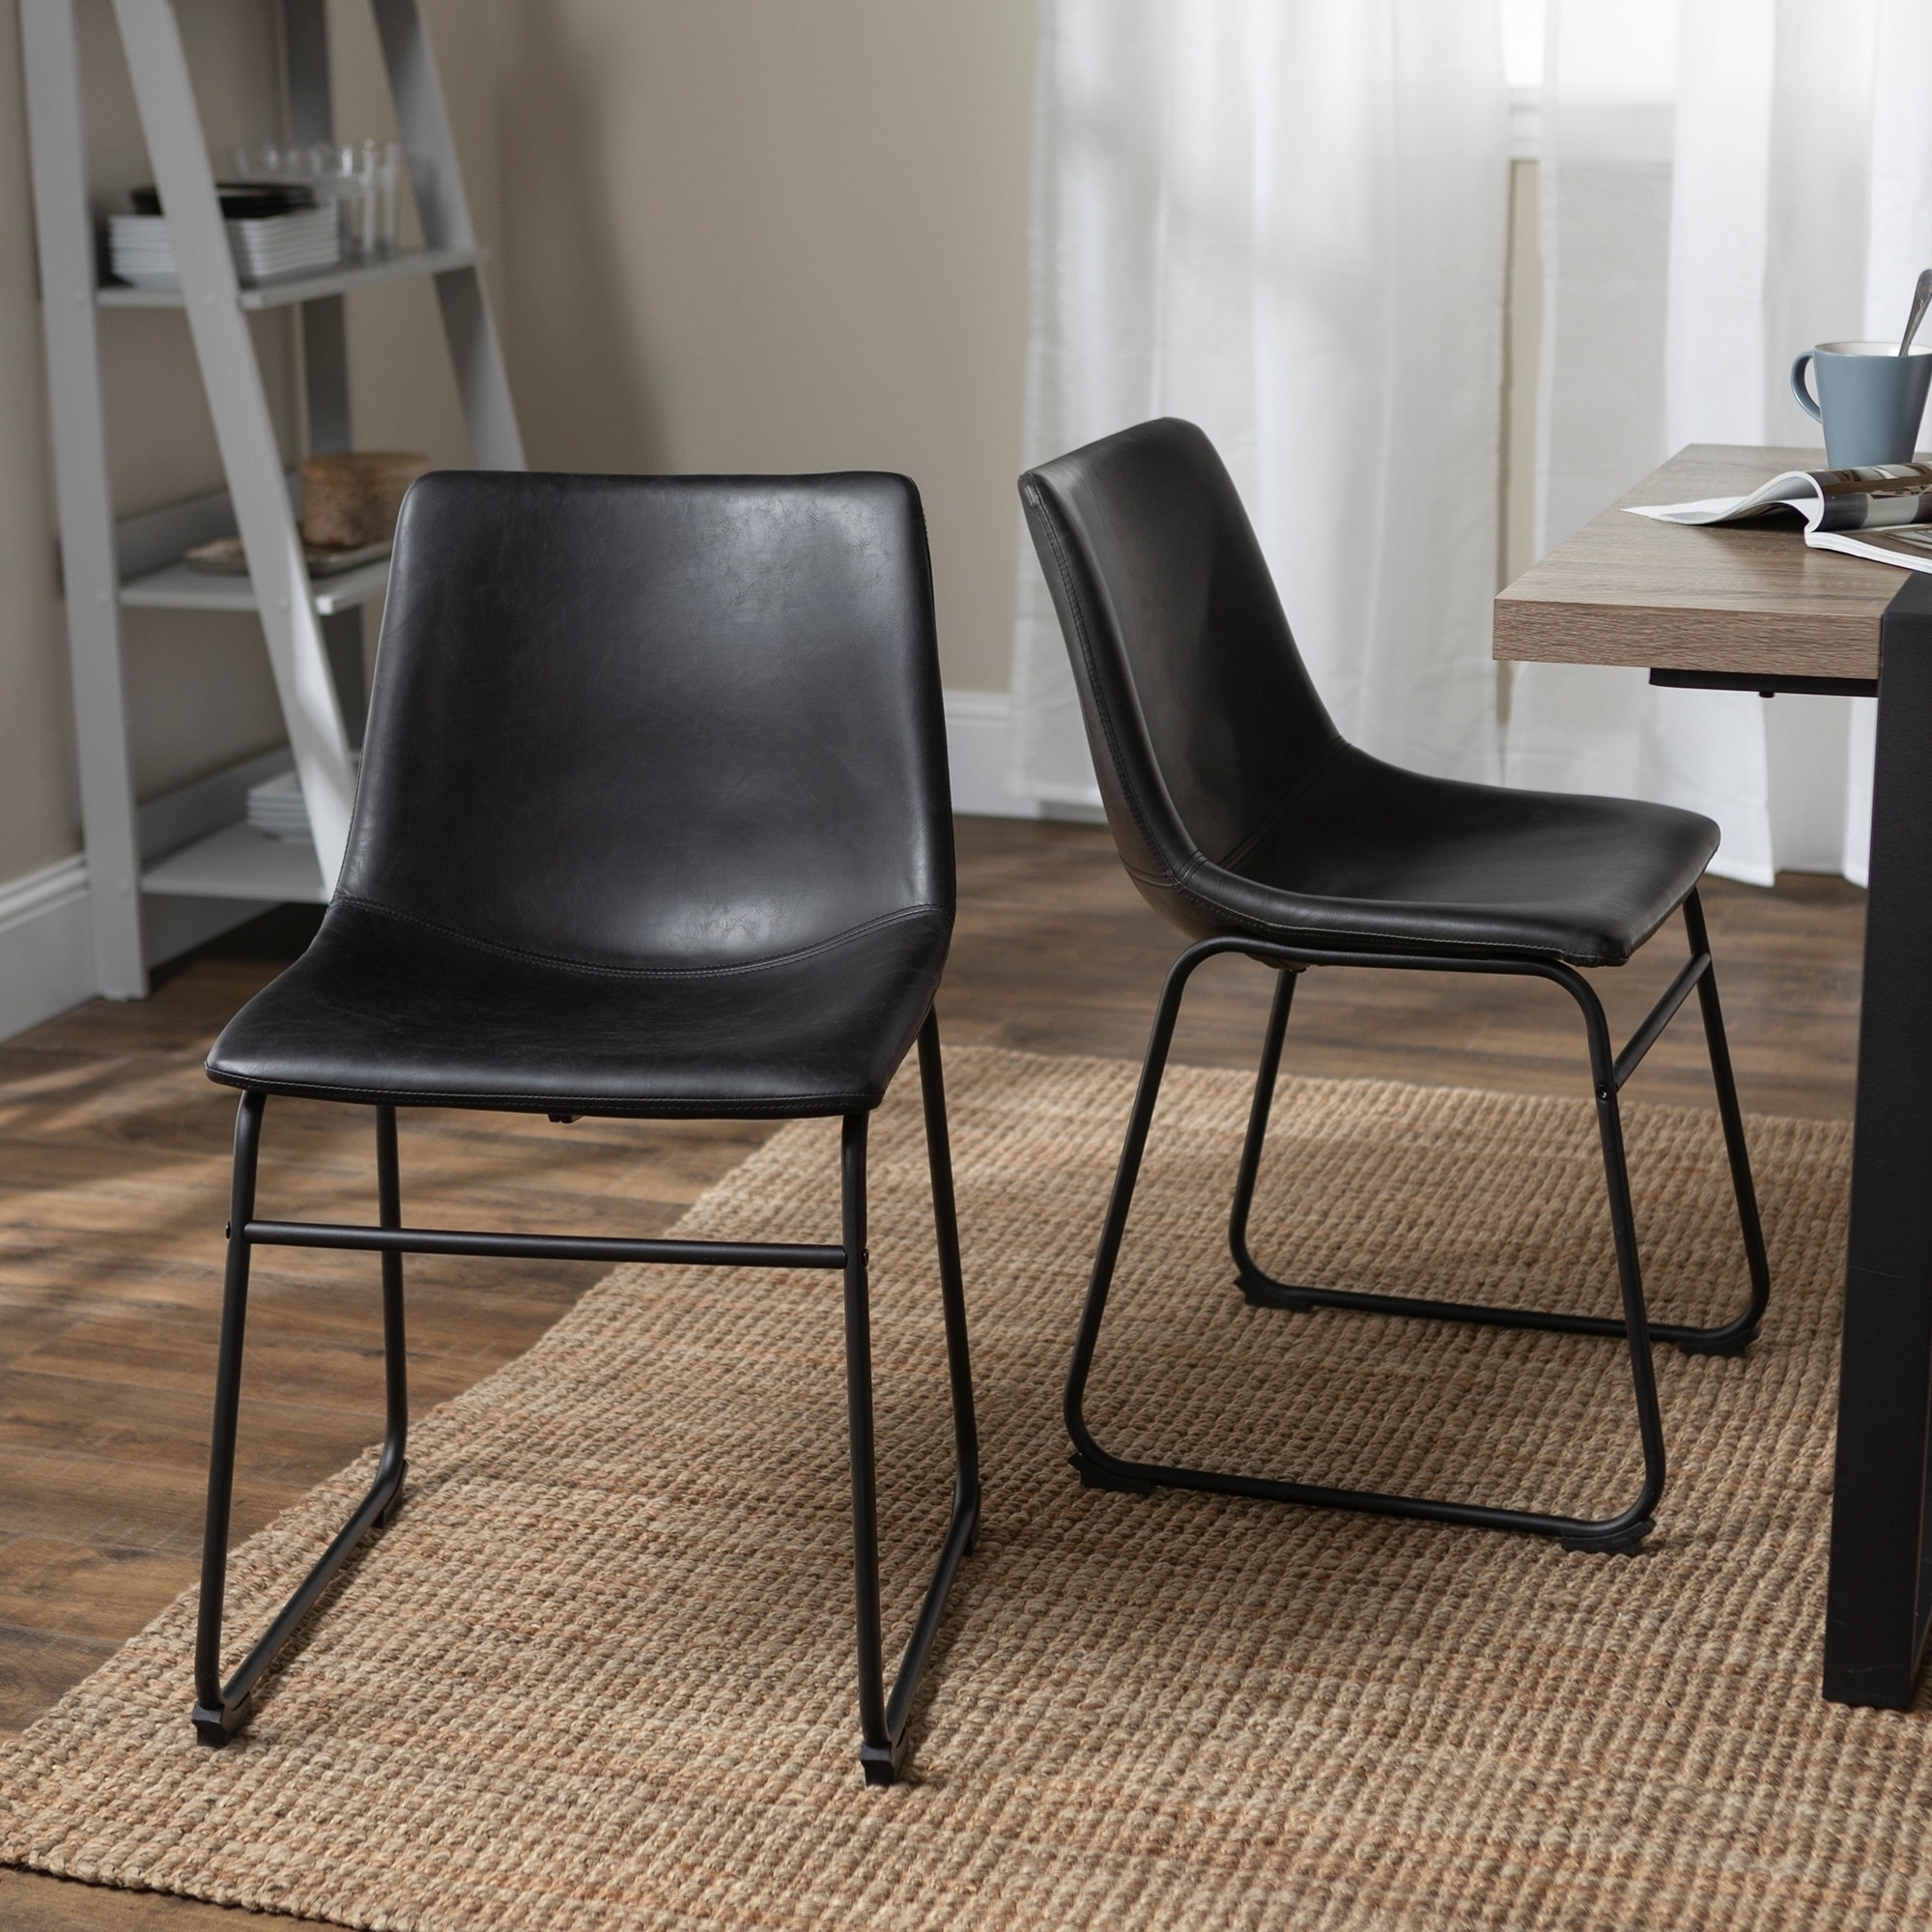 Carbon Loft Prusiner Black Faux Leather Dining Chairs Set Of 2 Urban Metal Sled Legs N A